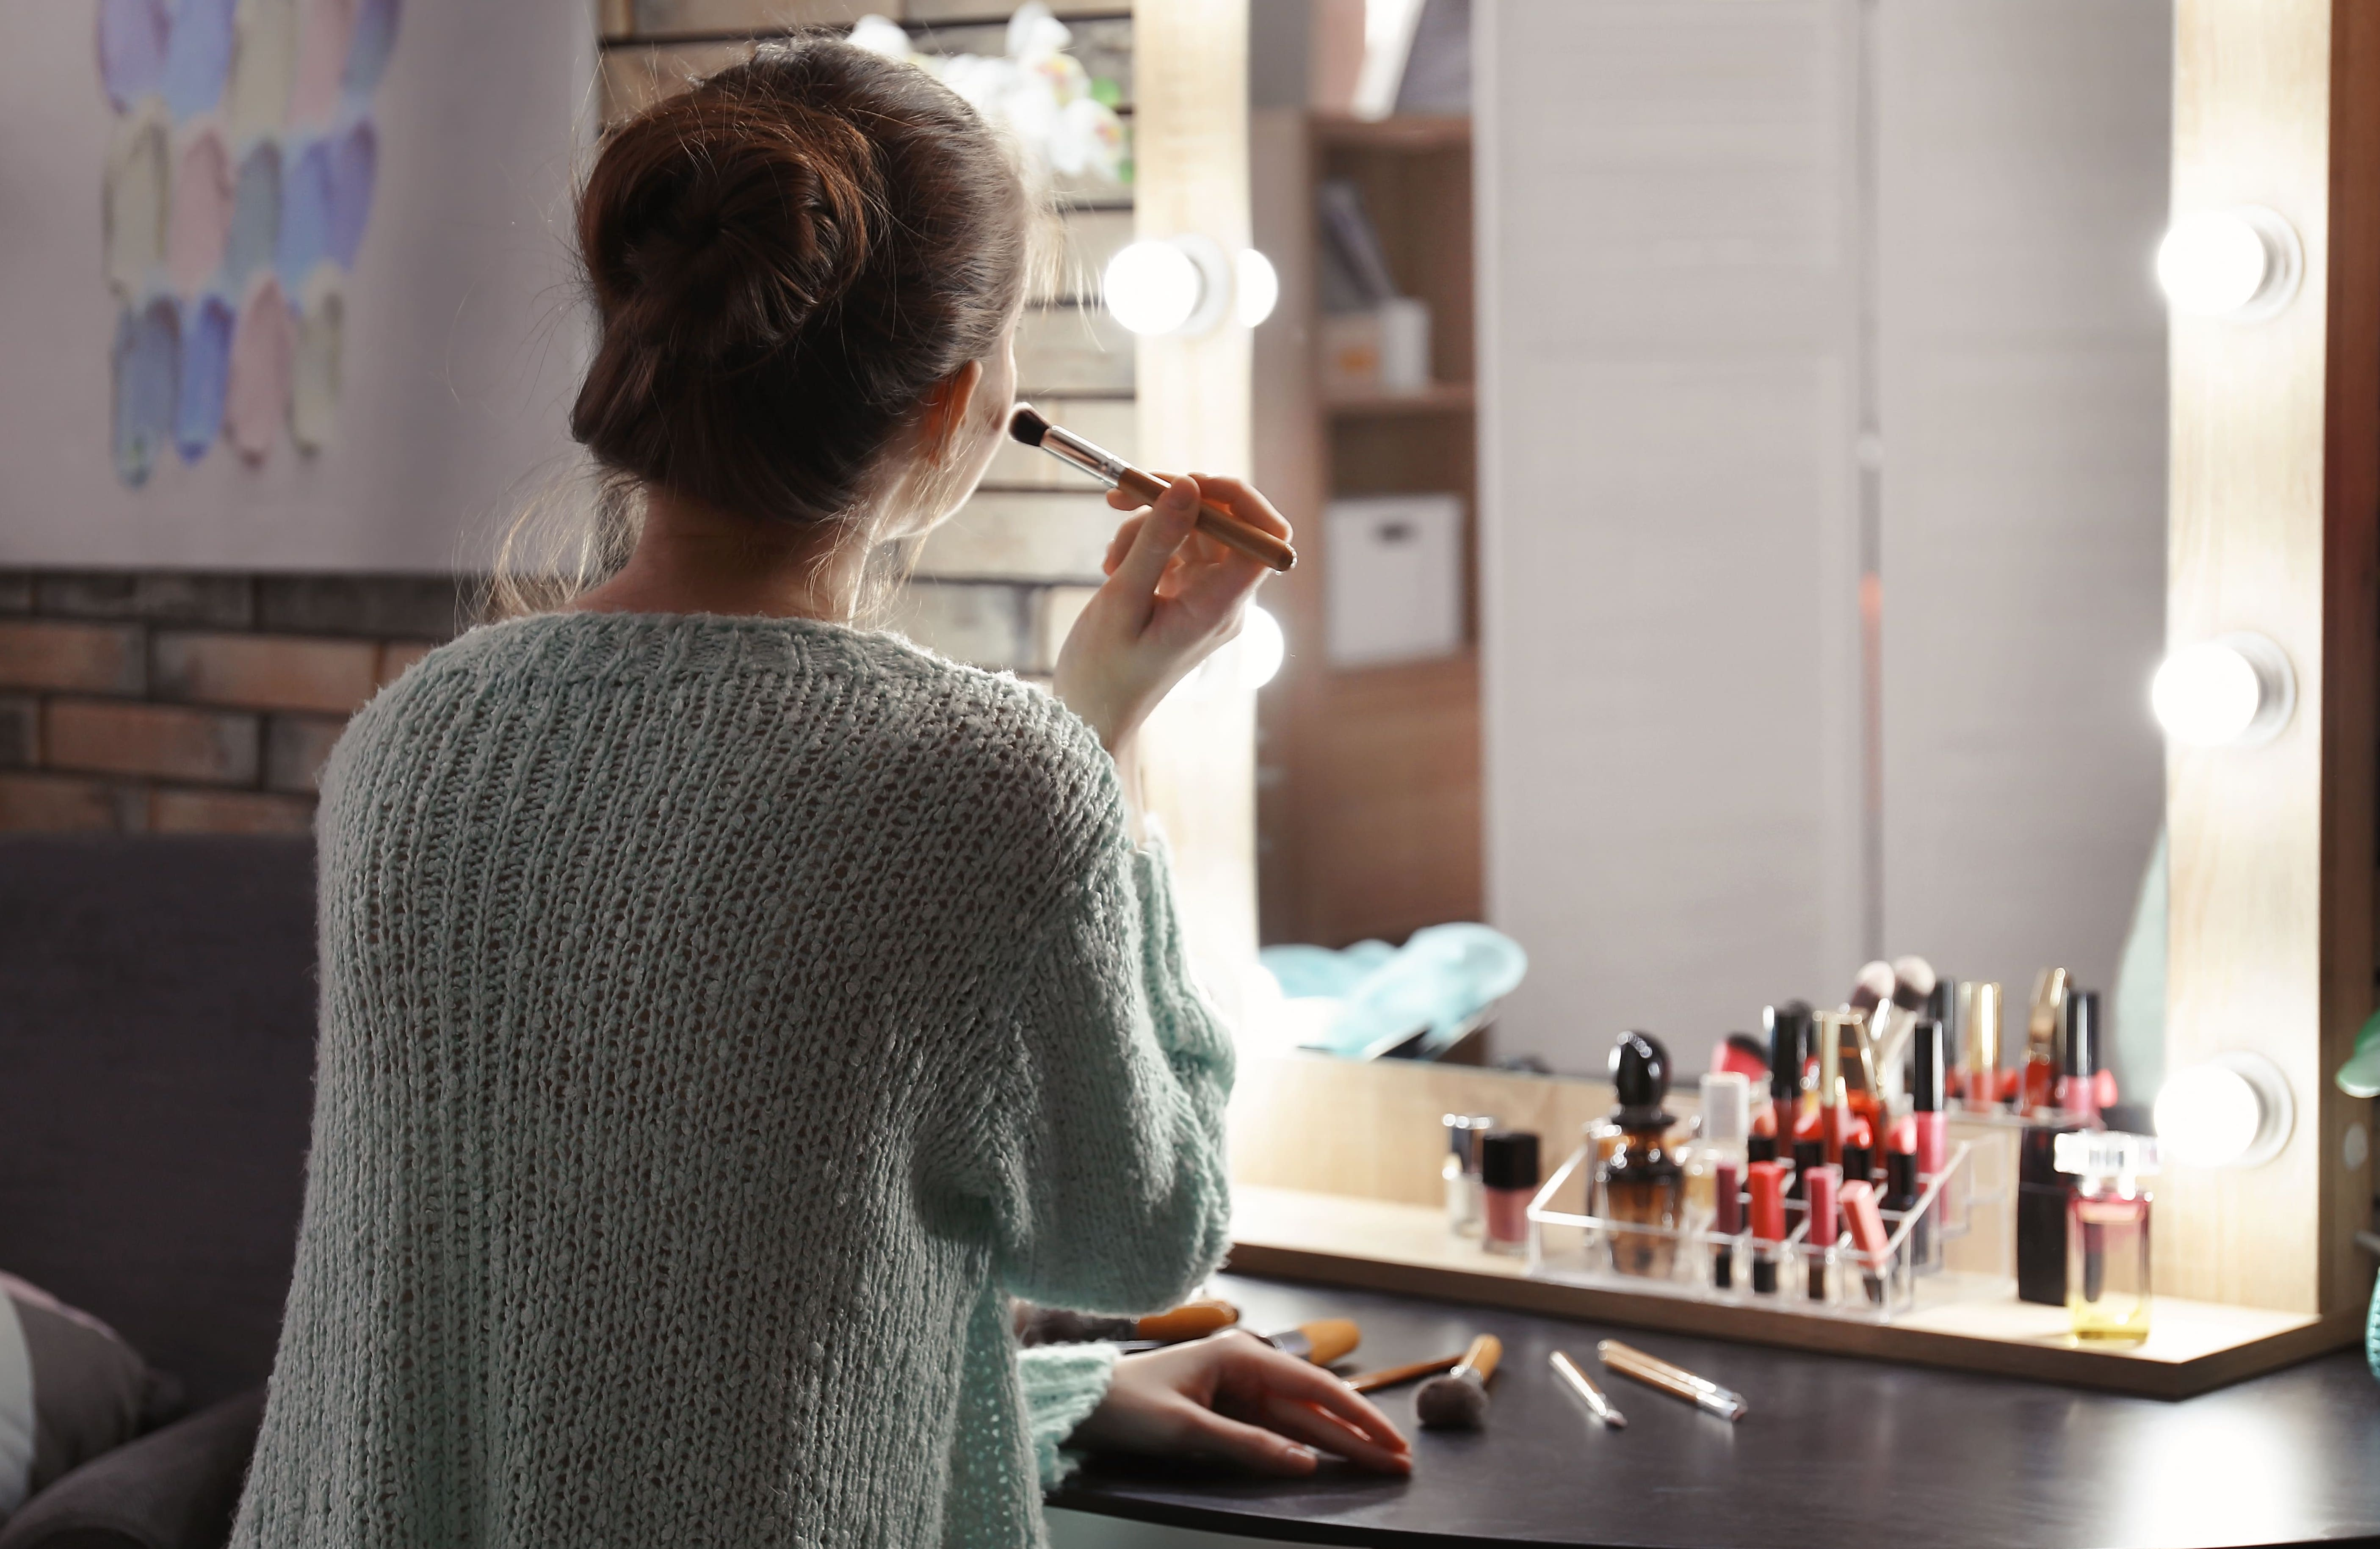 Woman sat at a dressing table putting makeup on in front of the mirror